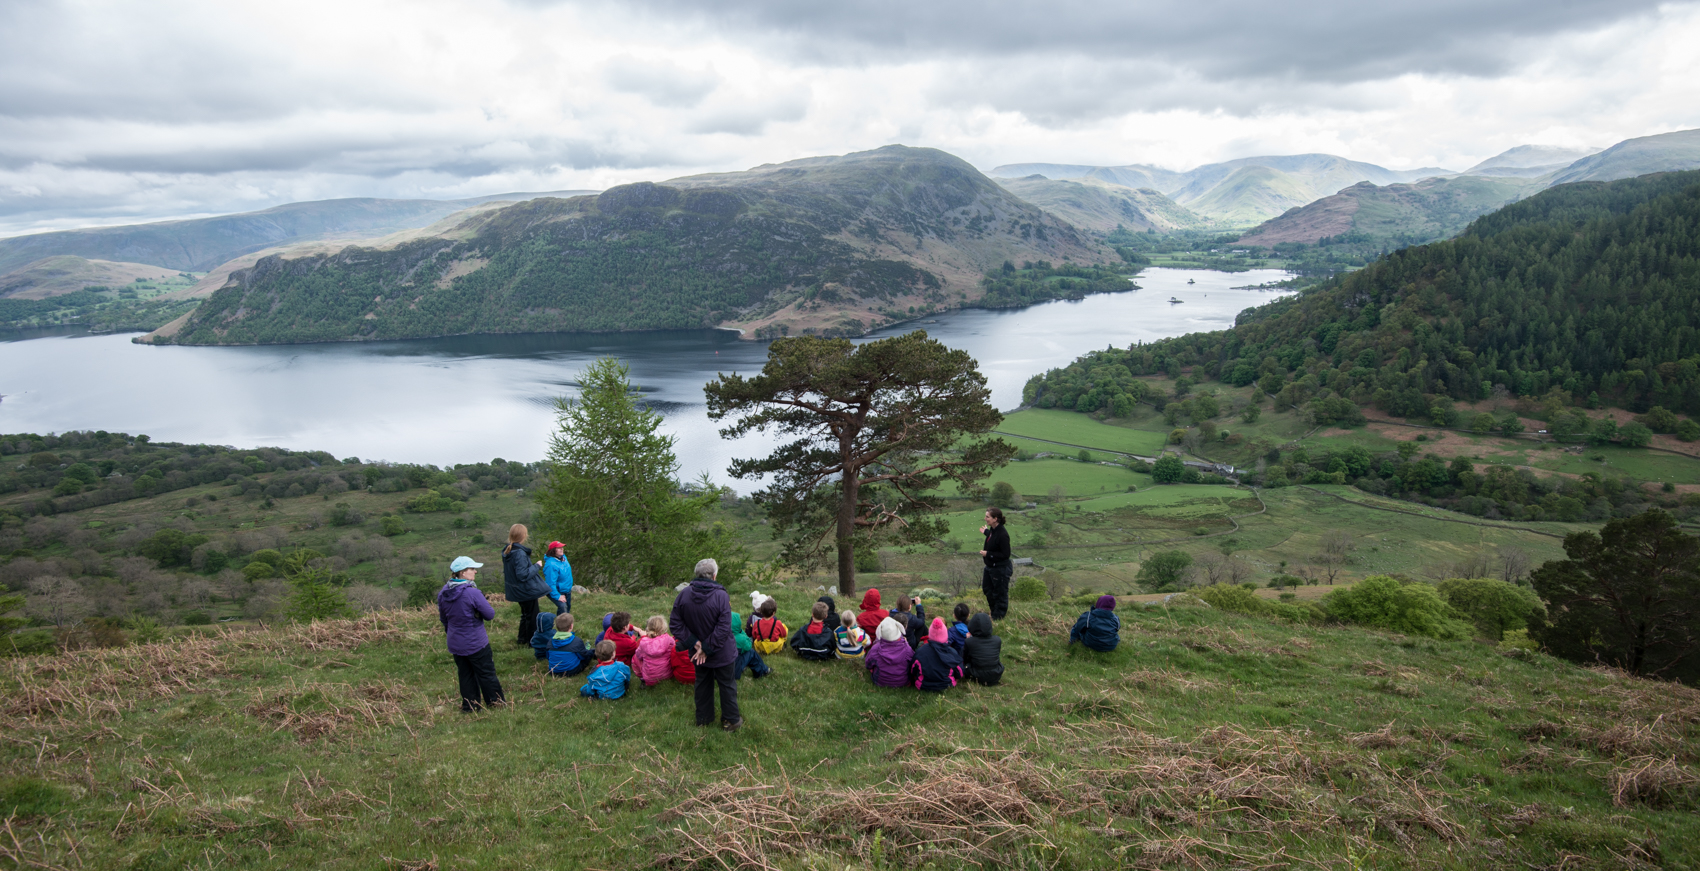 Patterdale School at the Glencoyne Pine